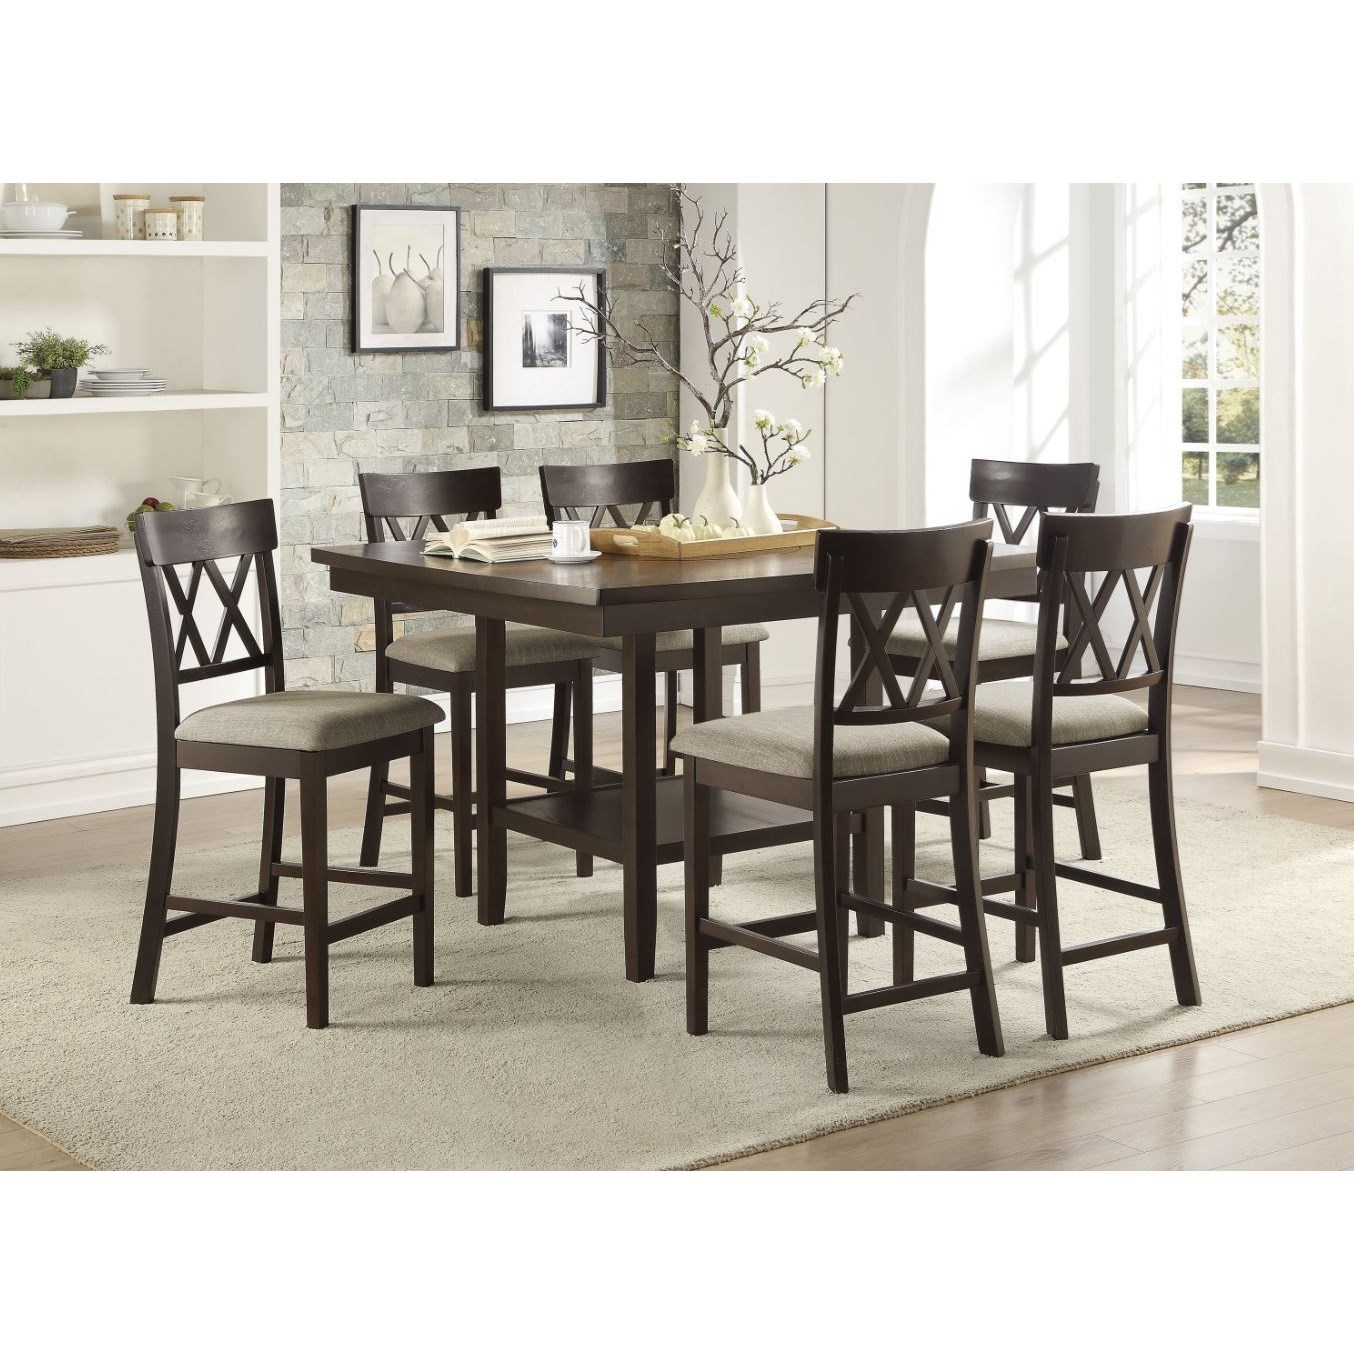 Balin 7-Piece Counter Height Table and Chair Set by Homelegance at Value City Furniture